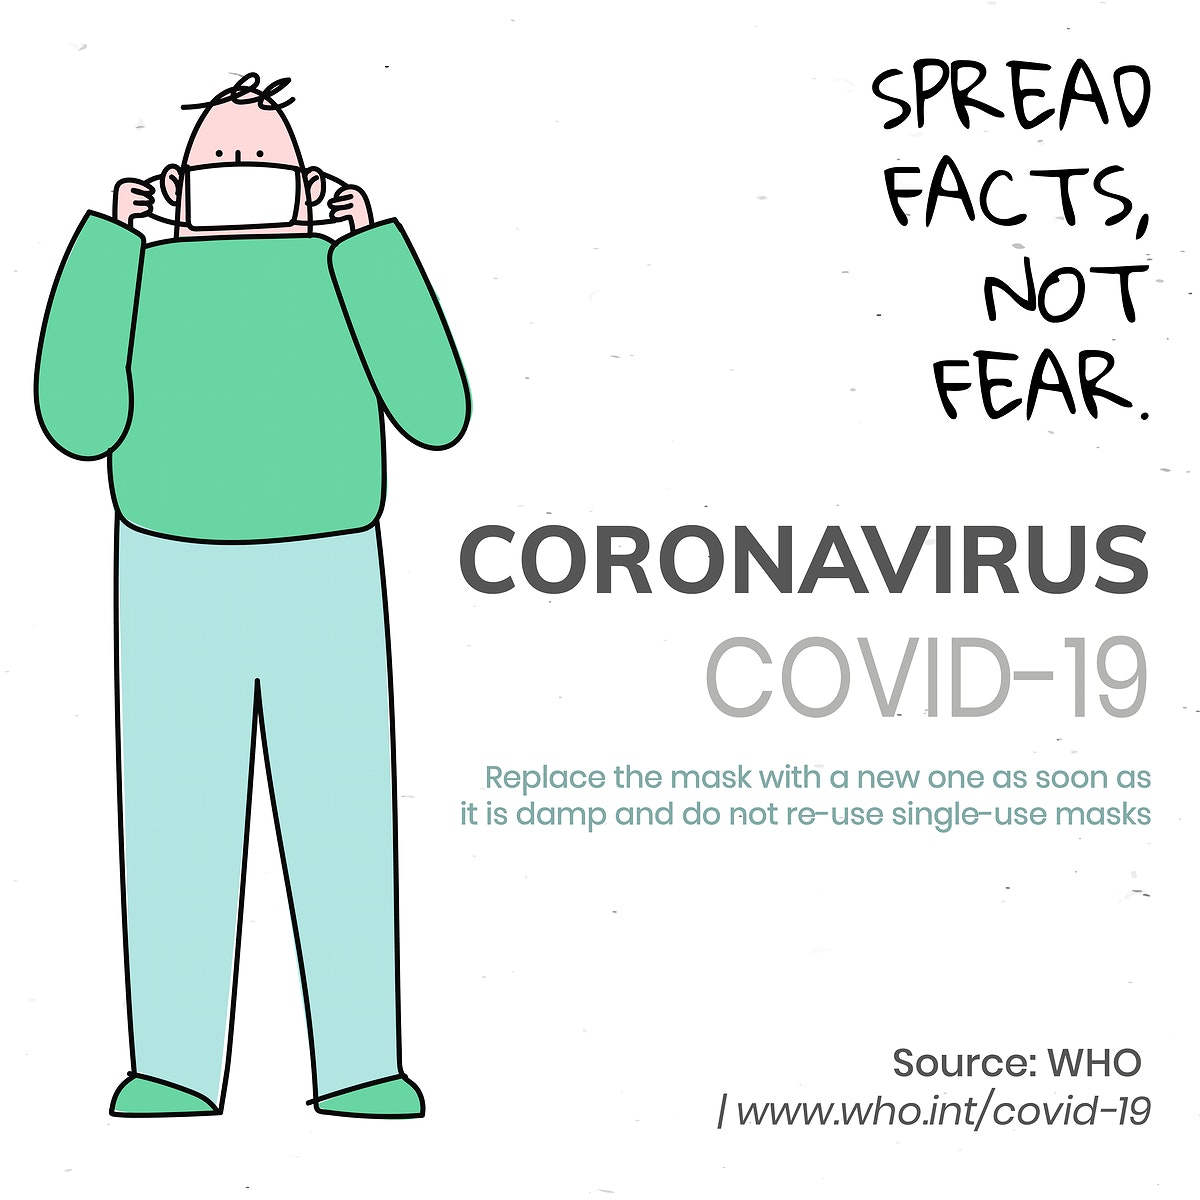 Spread facts, not fear coronavirus pandemic social template source WHO vector